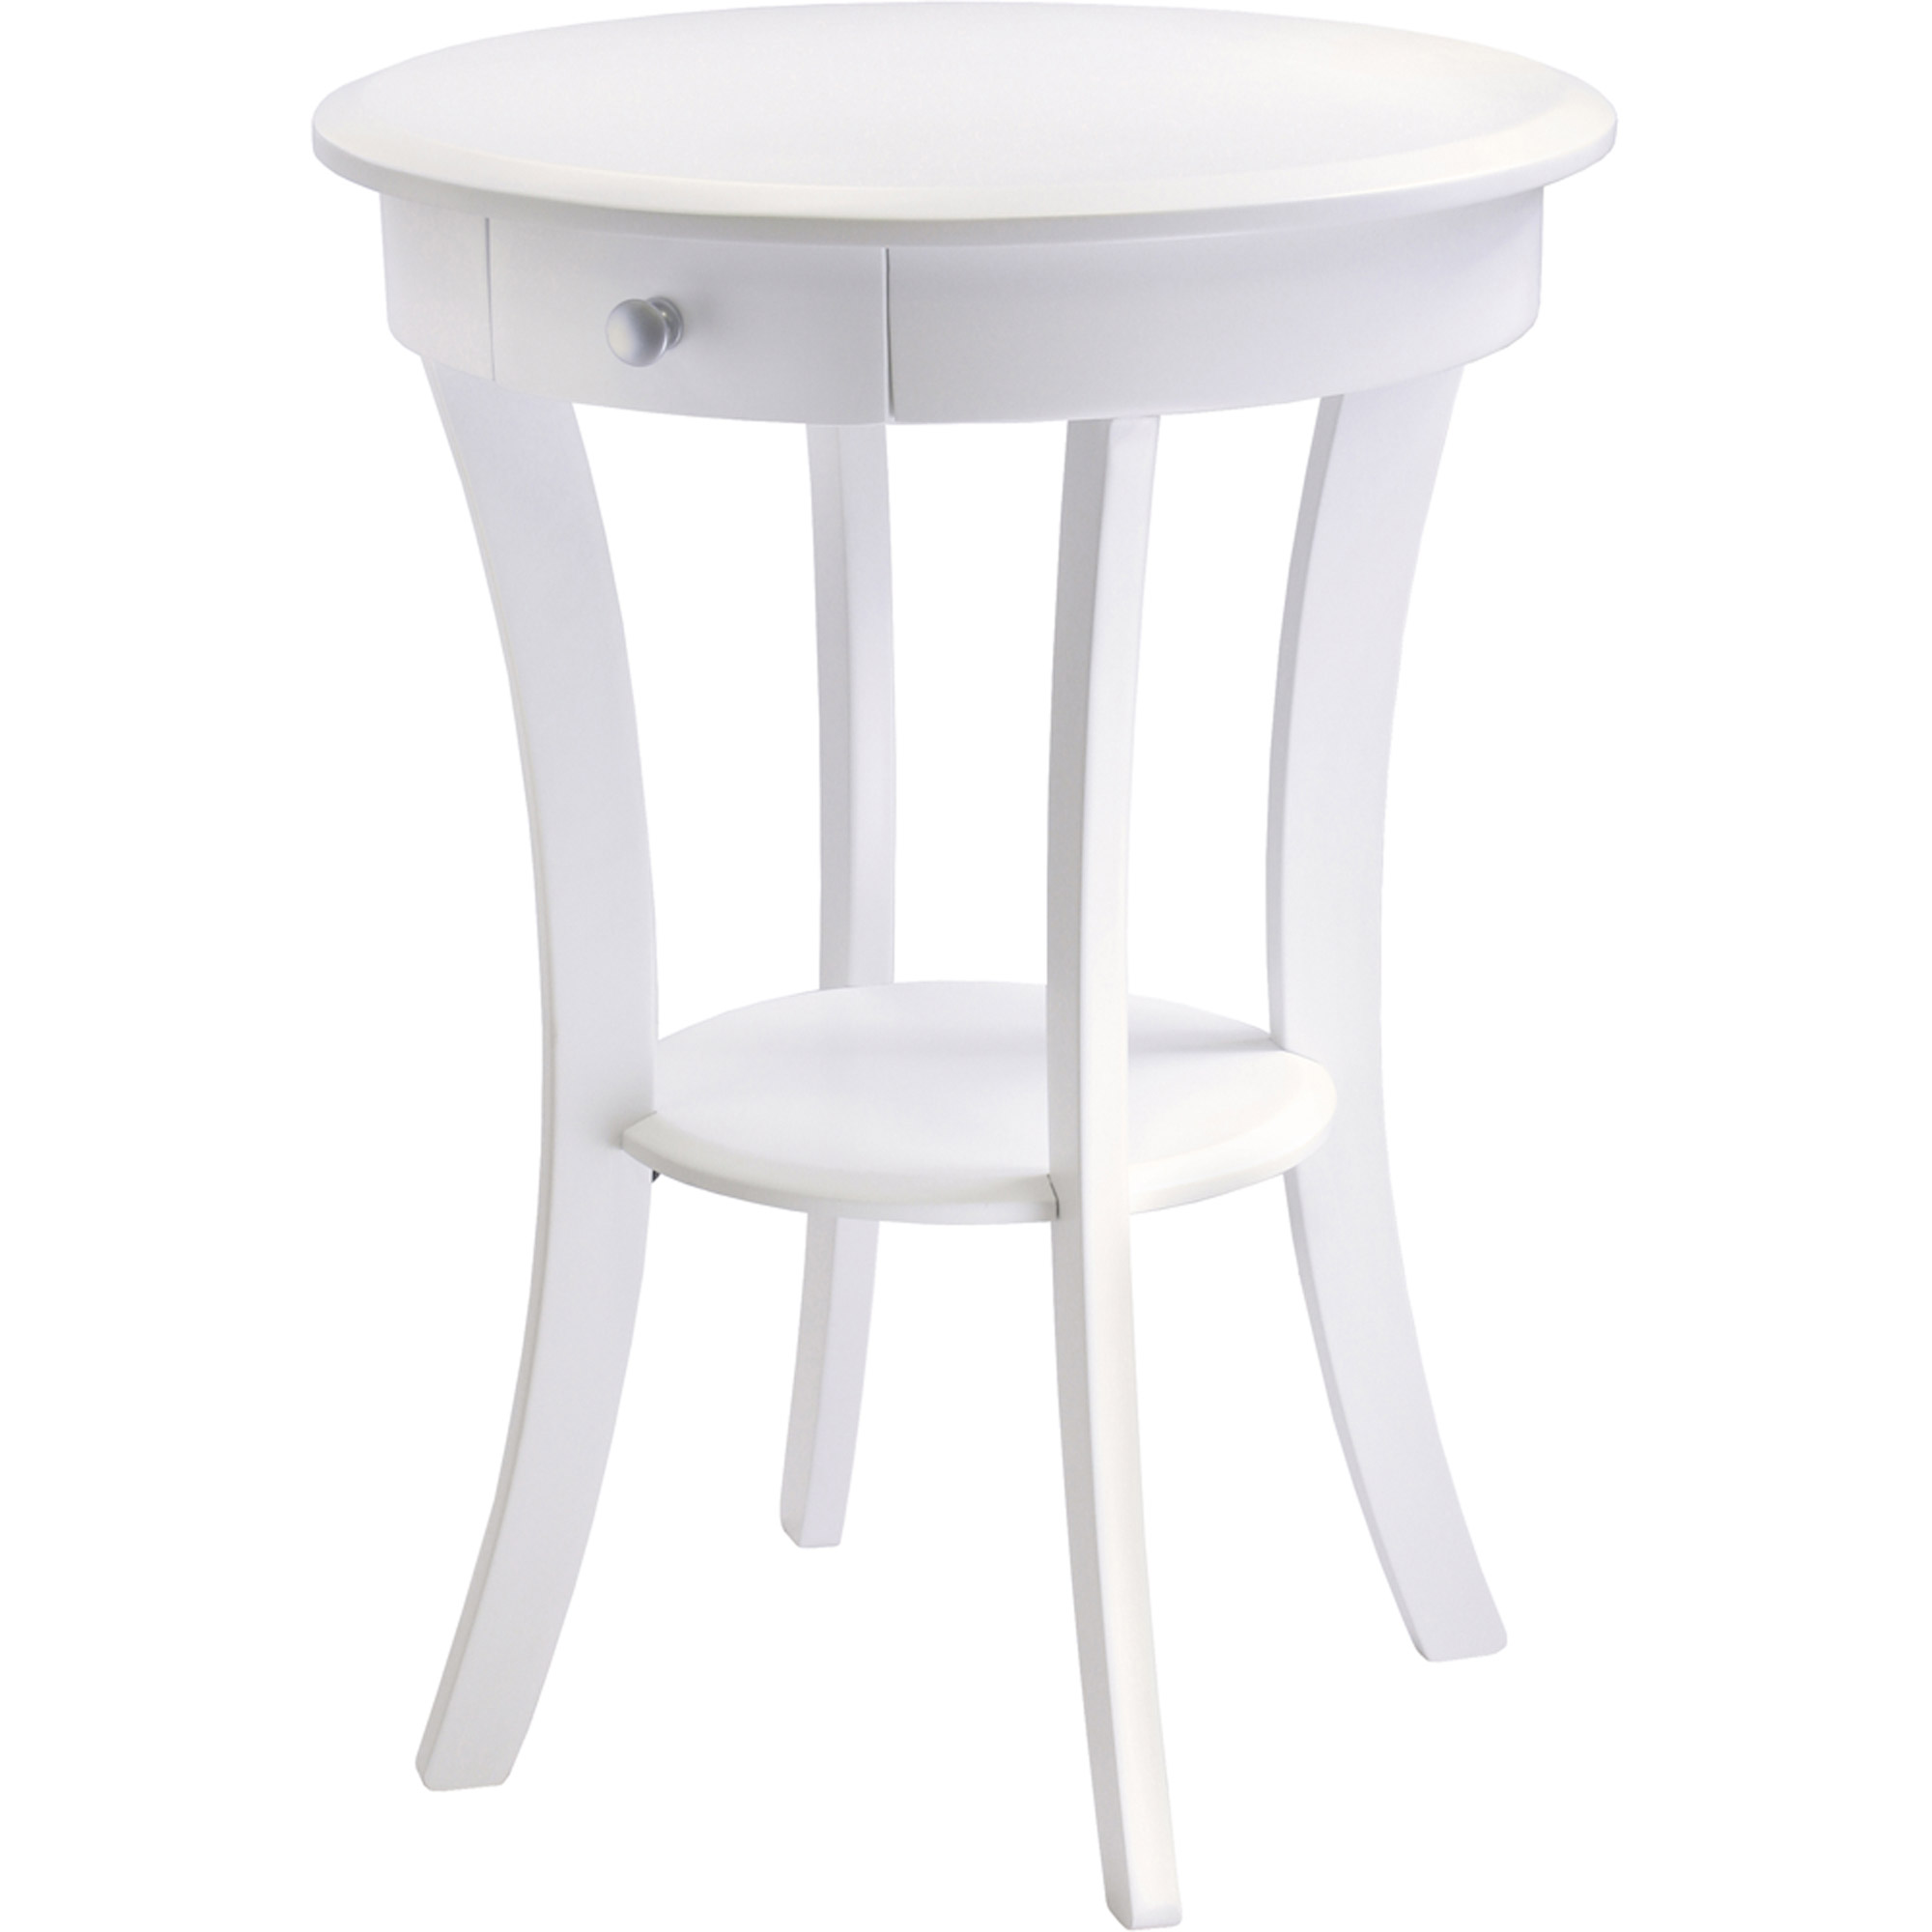 cool home round accent table small ideas wood covers side faux unfinished wooden white pedestal tablecloth cover decorating threshold for cloth full size stackable coffee metal